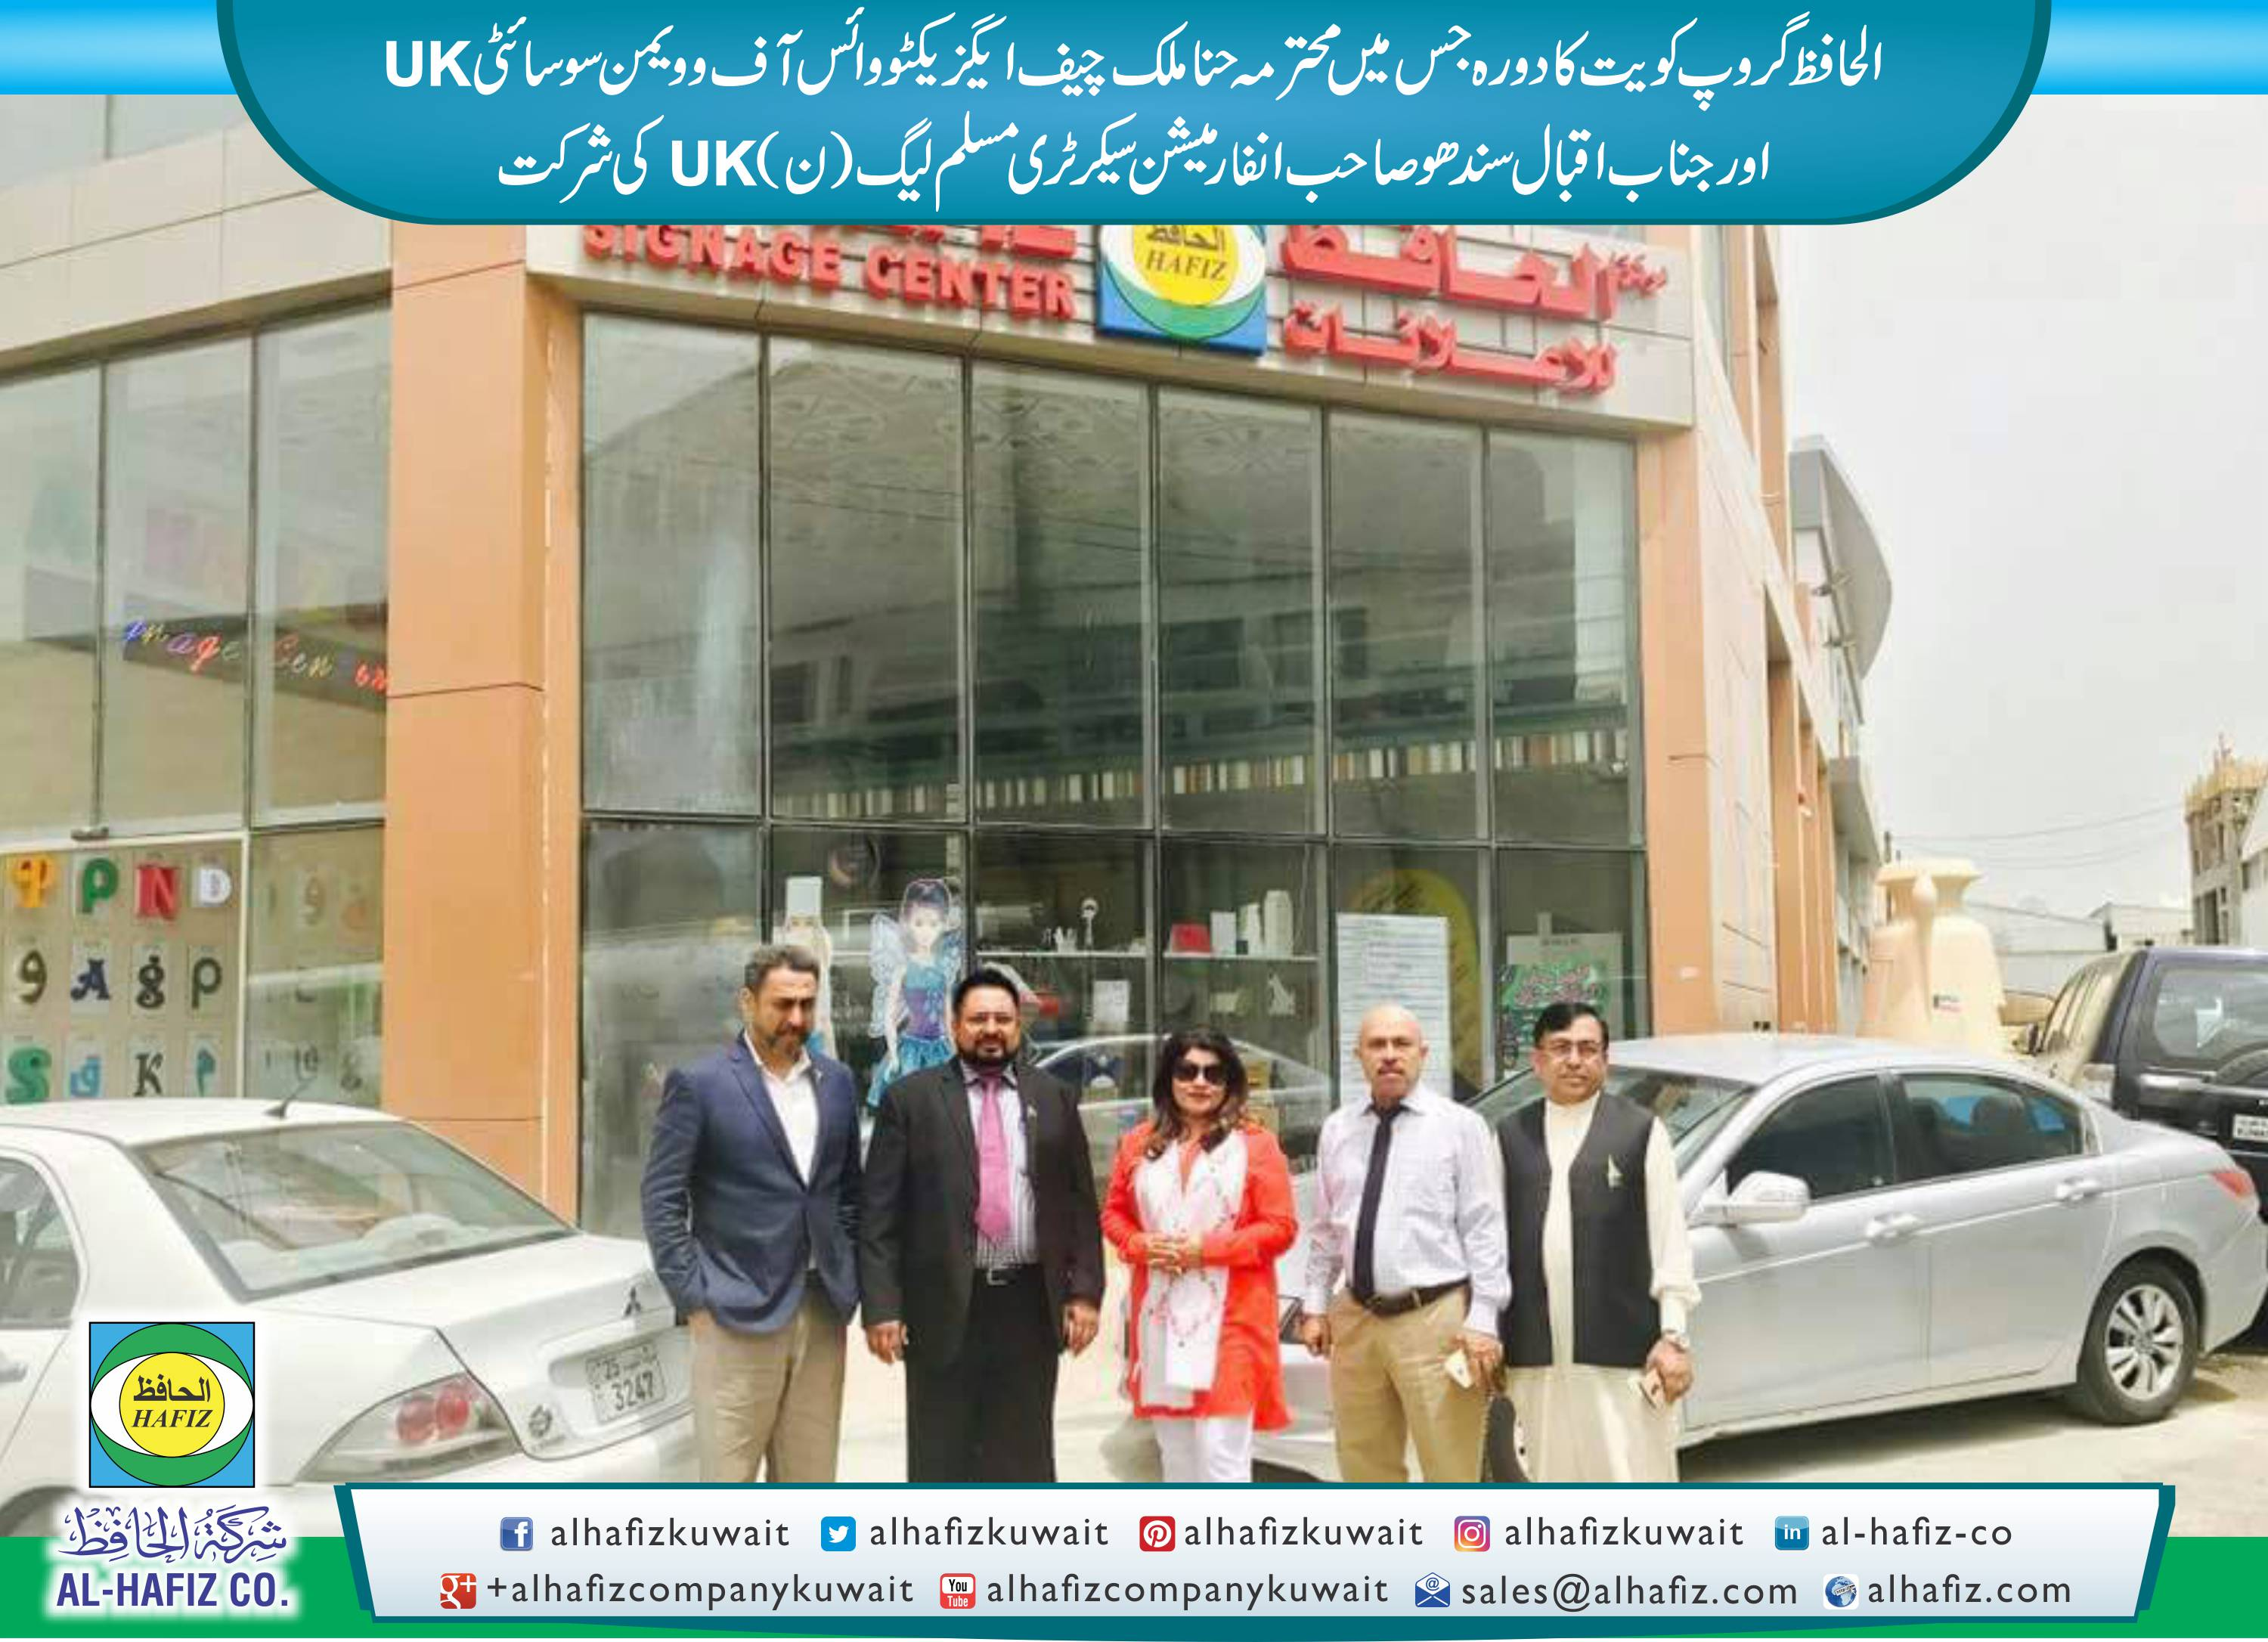 Hina Malik(CEO of voice of women society Uk)and Iqbal Sindho(Information Secretary PMLN UK)